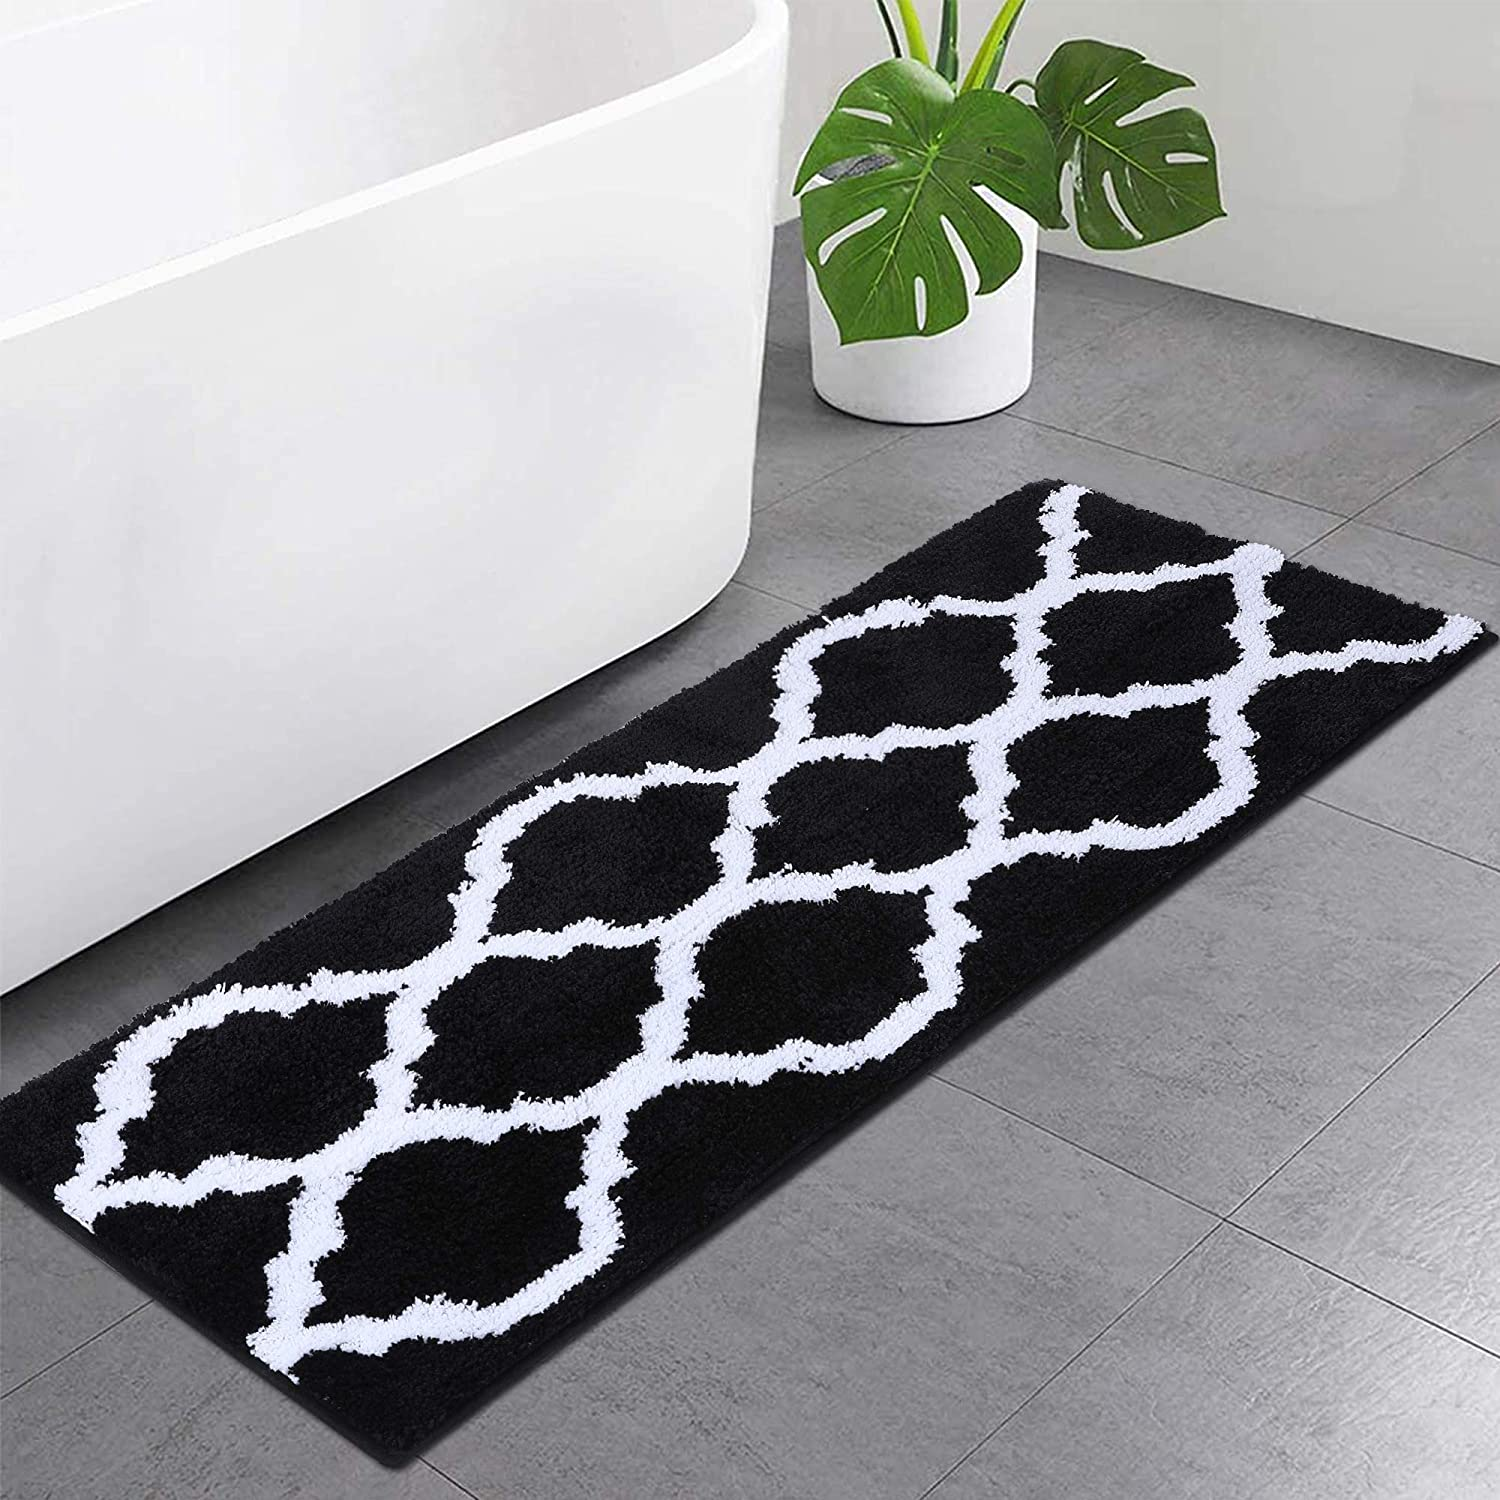 Olanly Luxury Bathroom Rugs Microfiber Bath Shower Mat, Machine Wash and Dry, Non-Slip Absorbent Shaggy Carpet Bath Mat for Bathroom, Living Room and Laundry Room 17